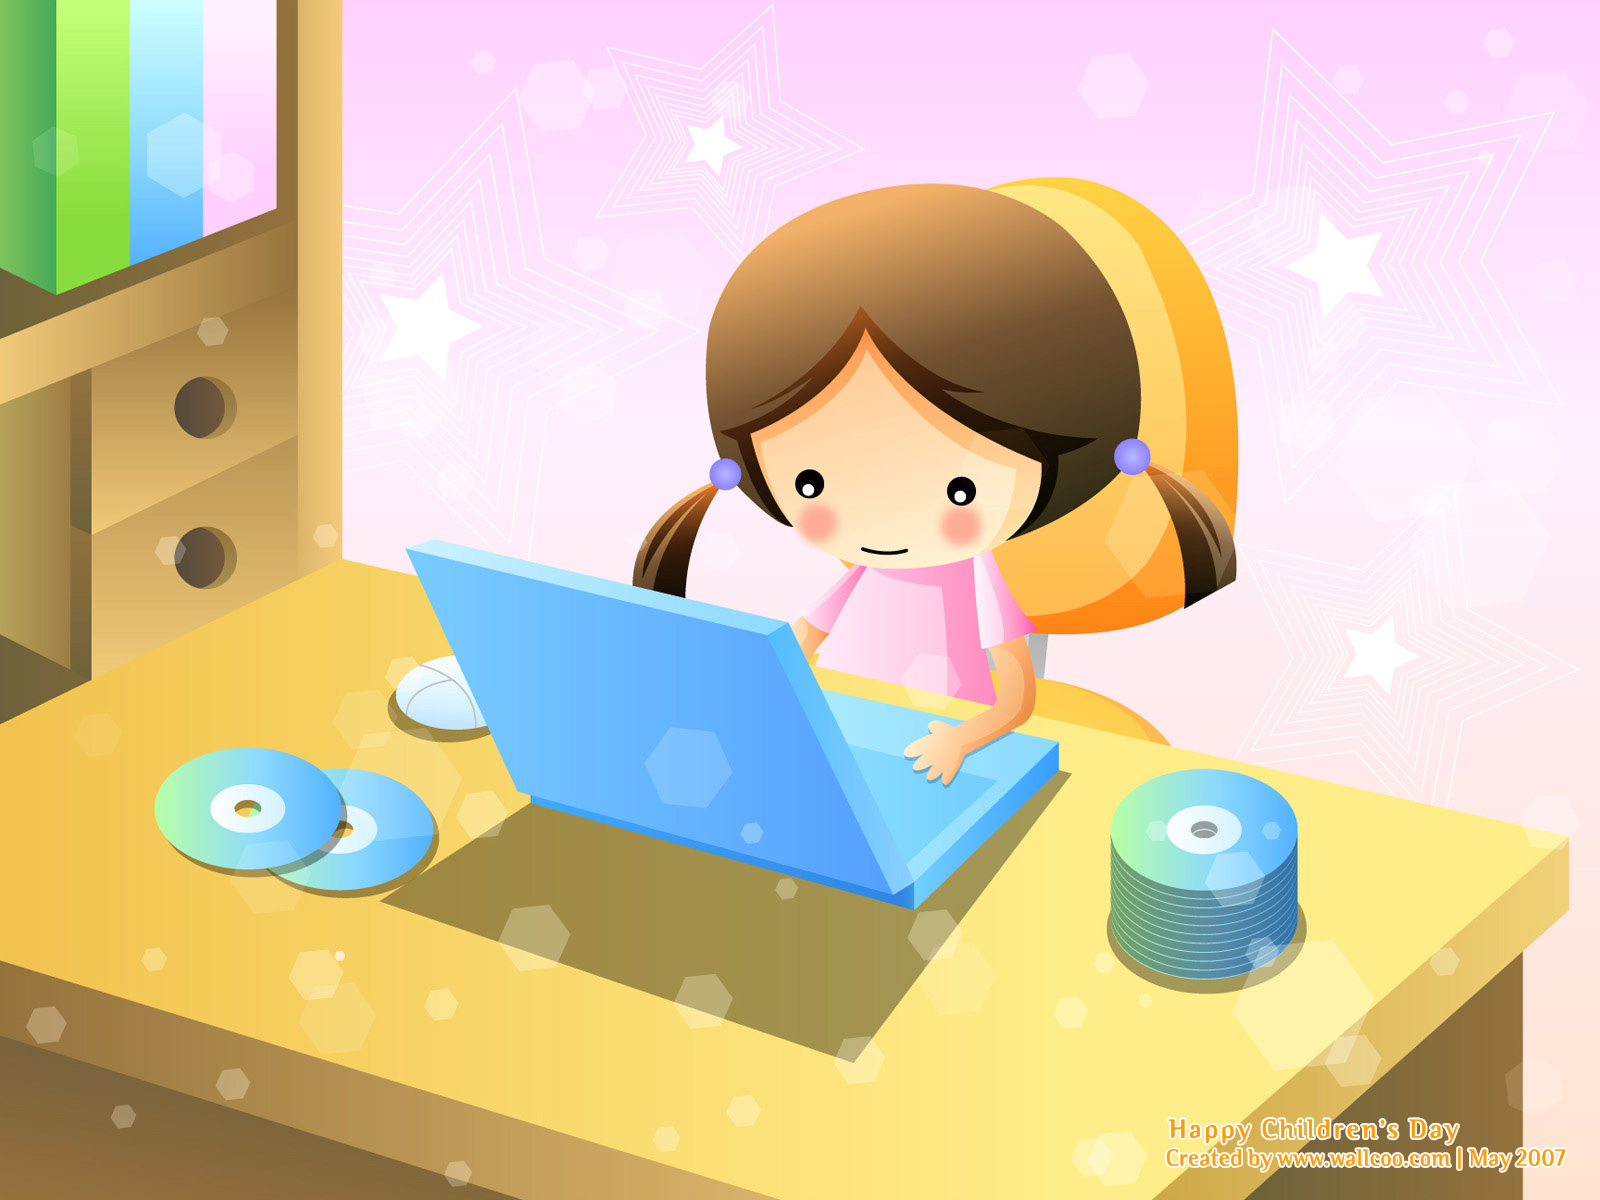 Colourful Illustrations for Children's Day 1600*1200 NO.17 Wallpaper